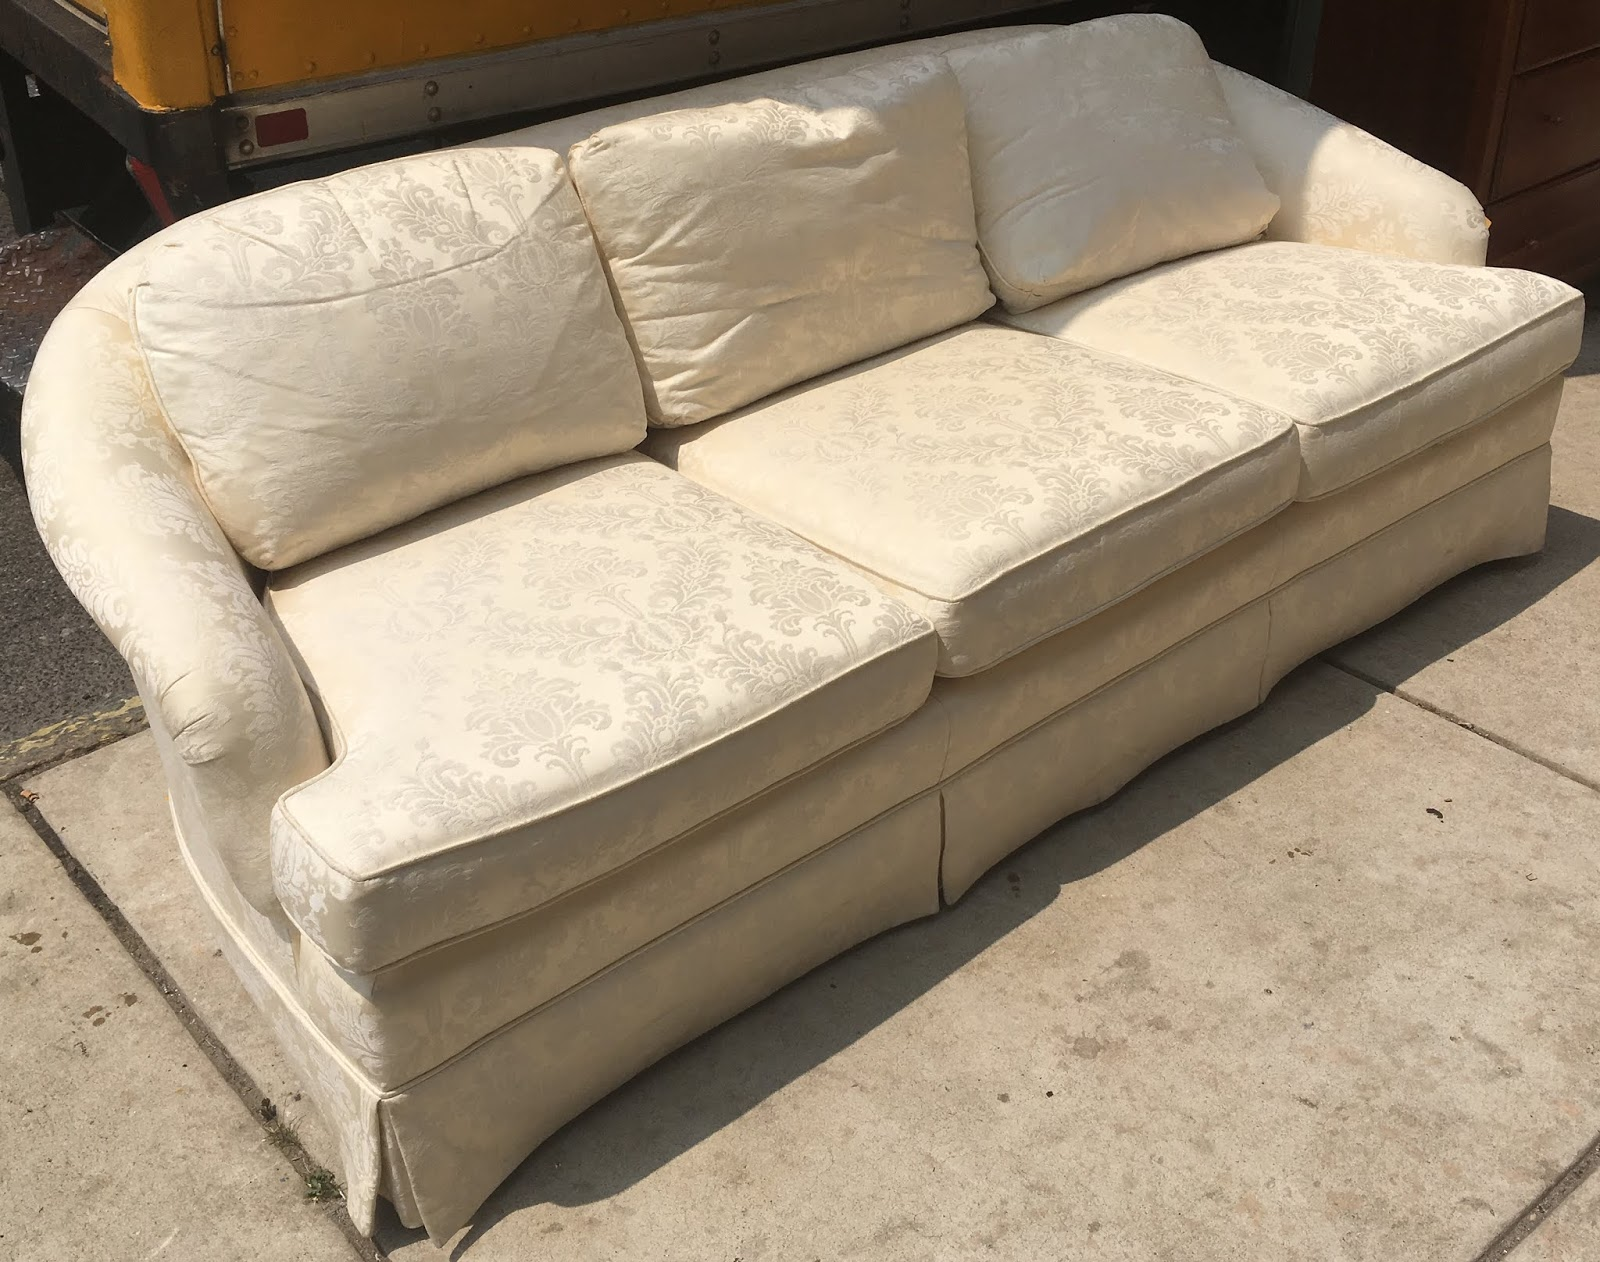 Groovy Uhuru Furniture Collectibles White Brocade Couch By Theyellowbook Wood Chair Design Ideas Theyellowbookinfo